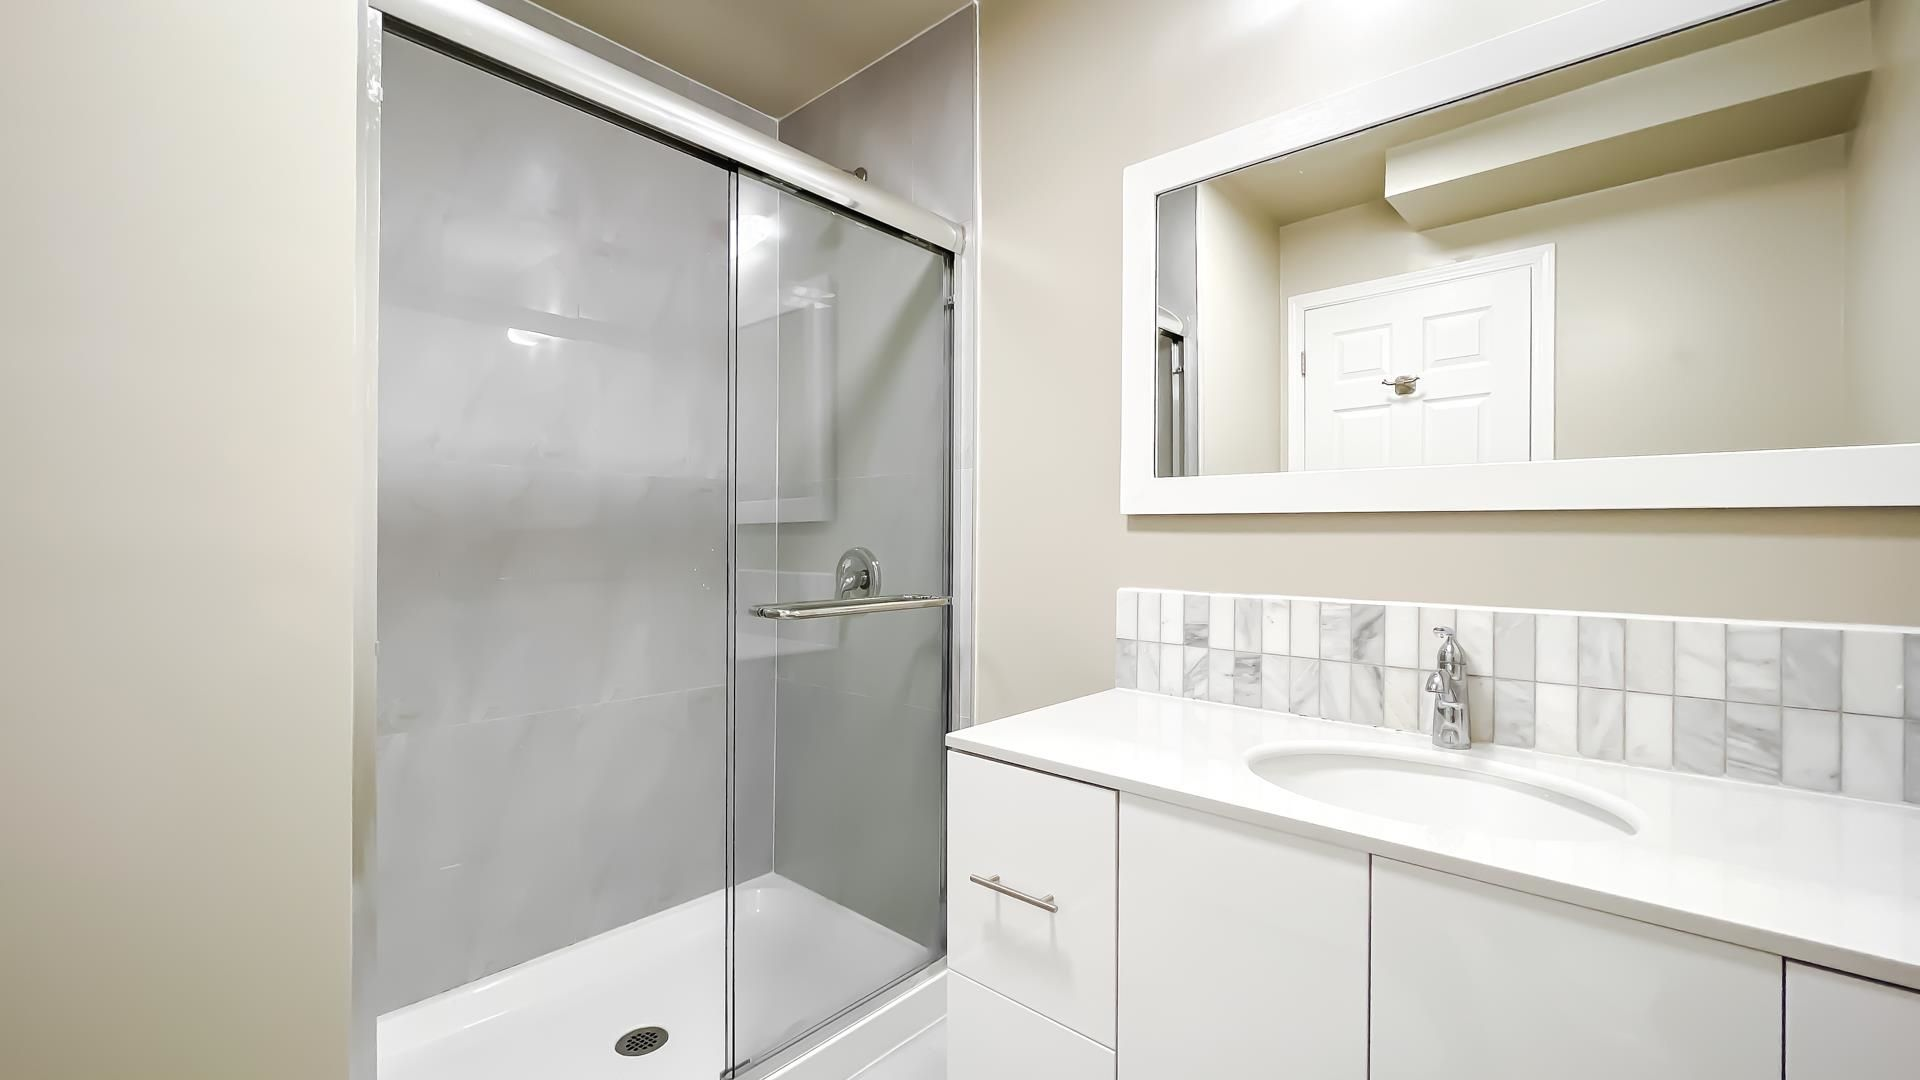 Photo 20: Photos: 66 9000 ASH GROVE CRESCENT in Burnaby: Forest Hills BN Townhouse for sale (Burnaby North)  : MLS®# R2603744